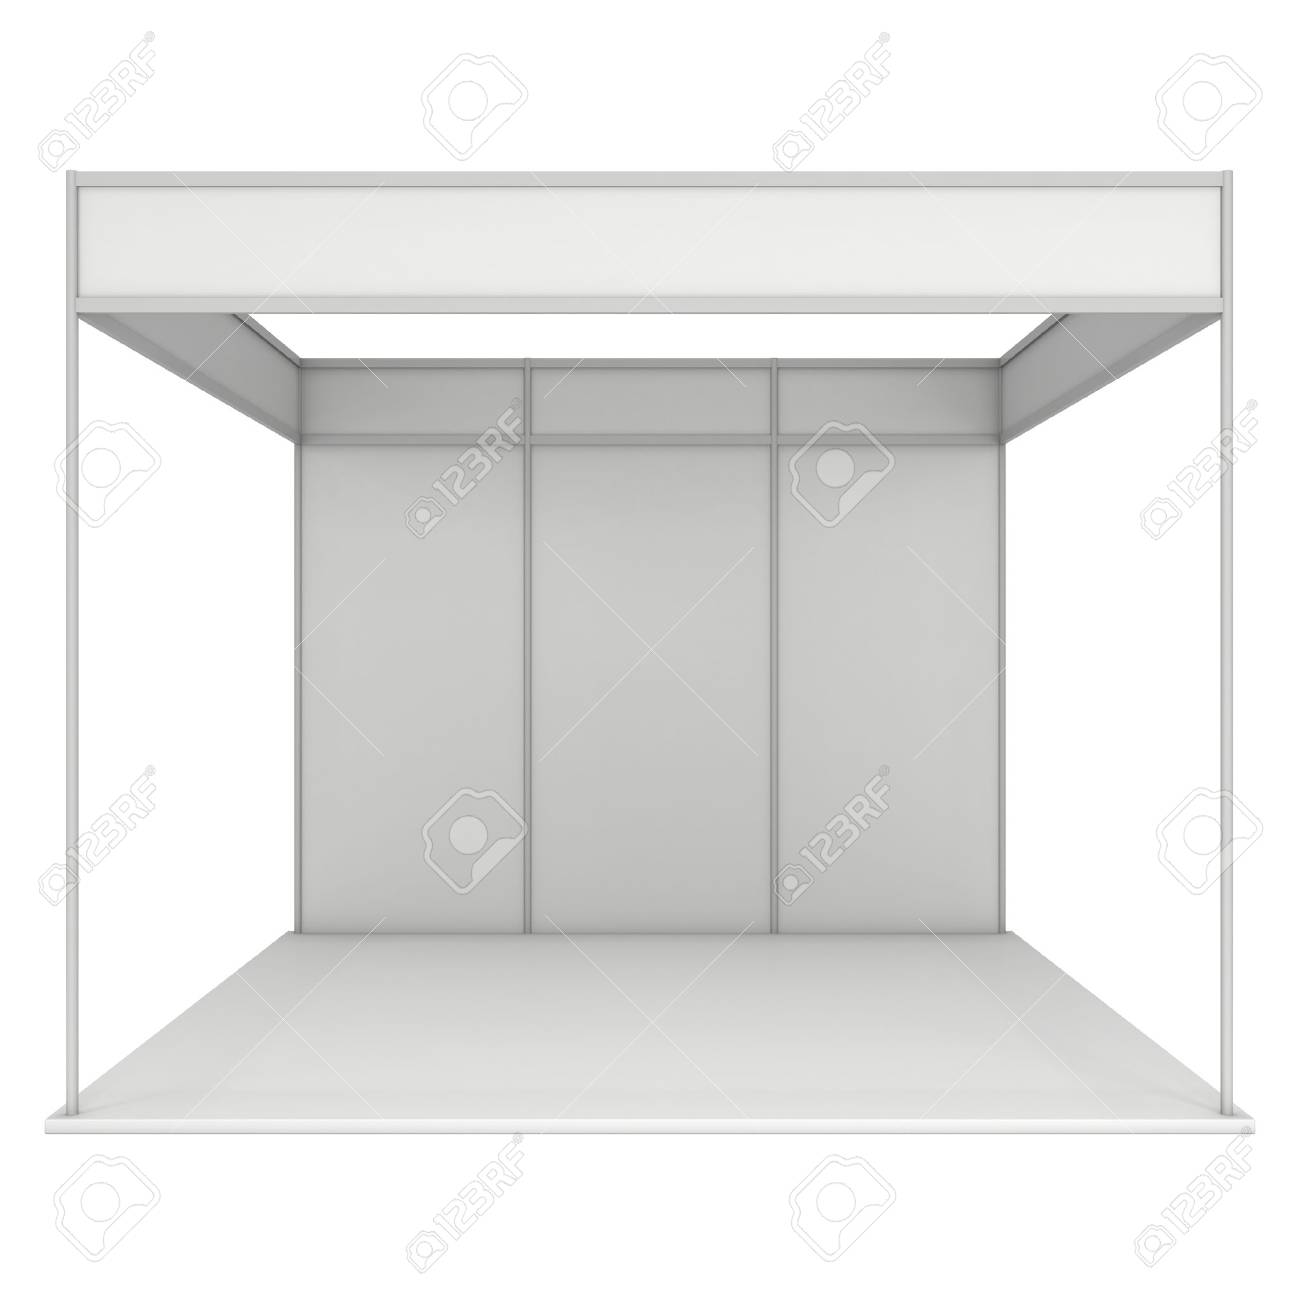 Trade Show Booth White And Blank Blank Indoor Exhibition With